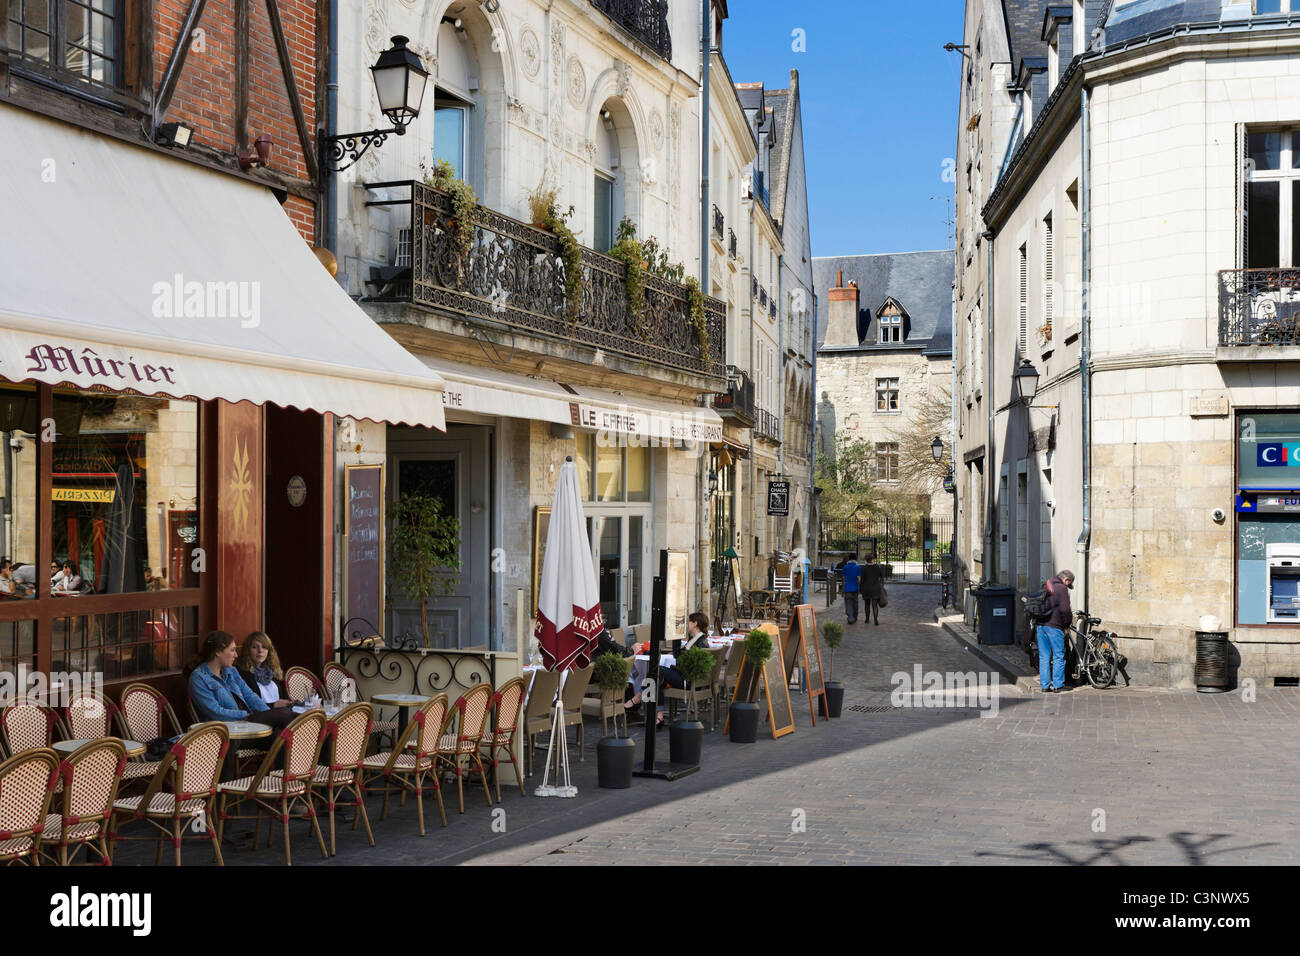 Cafes in Place Plumereau in the old quarter of the city, Tours, Indre et Loire, France - Stock Image